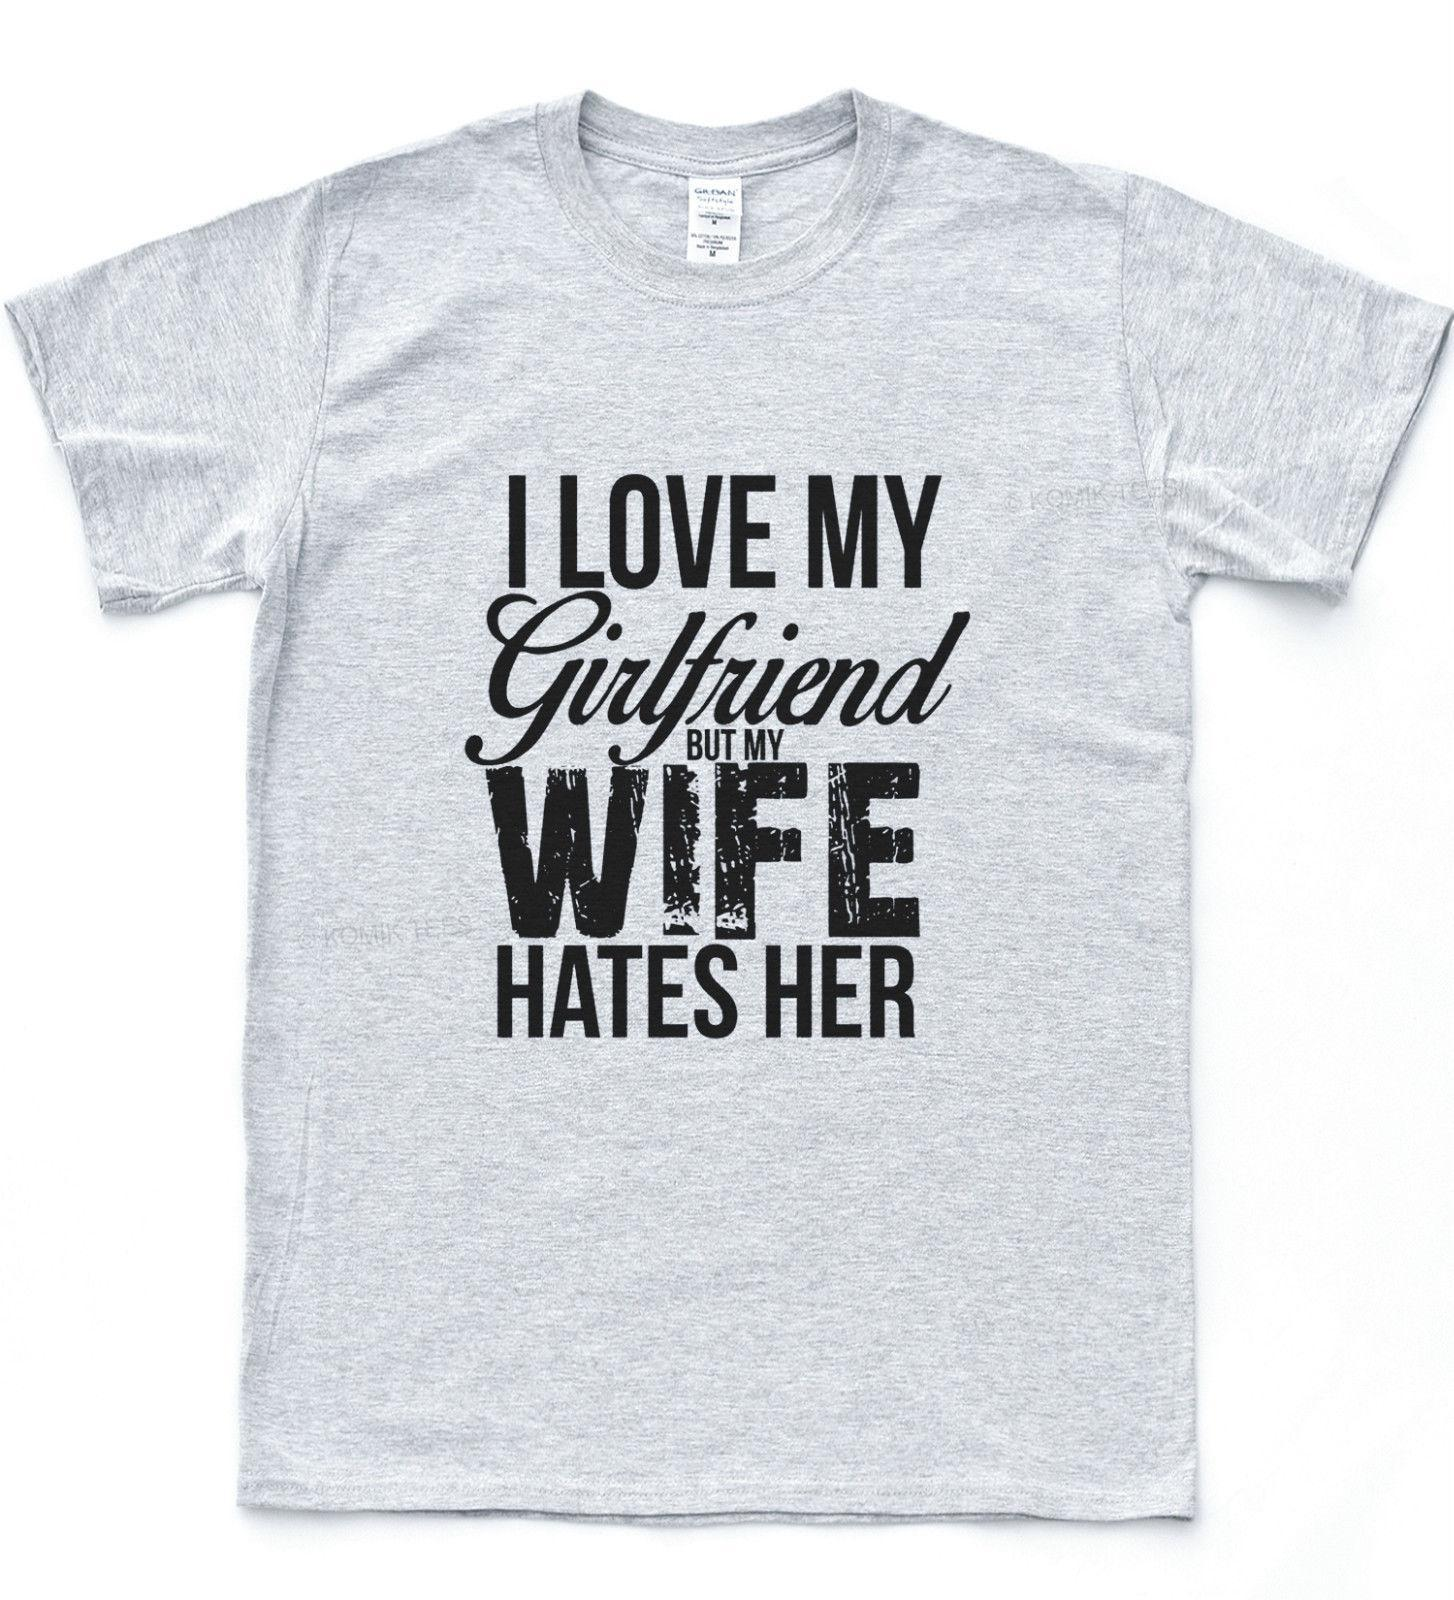 a996eef3e Love My Wife Girlfriend Divorce Funny Brakeup Tee Slogan Heart Valentine T  Shirt T Shirt Every Day Funny Cool Shirts From Jie48, $14.67| DHgate.Com